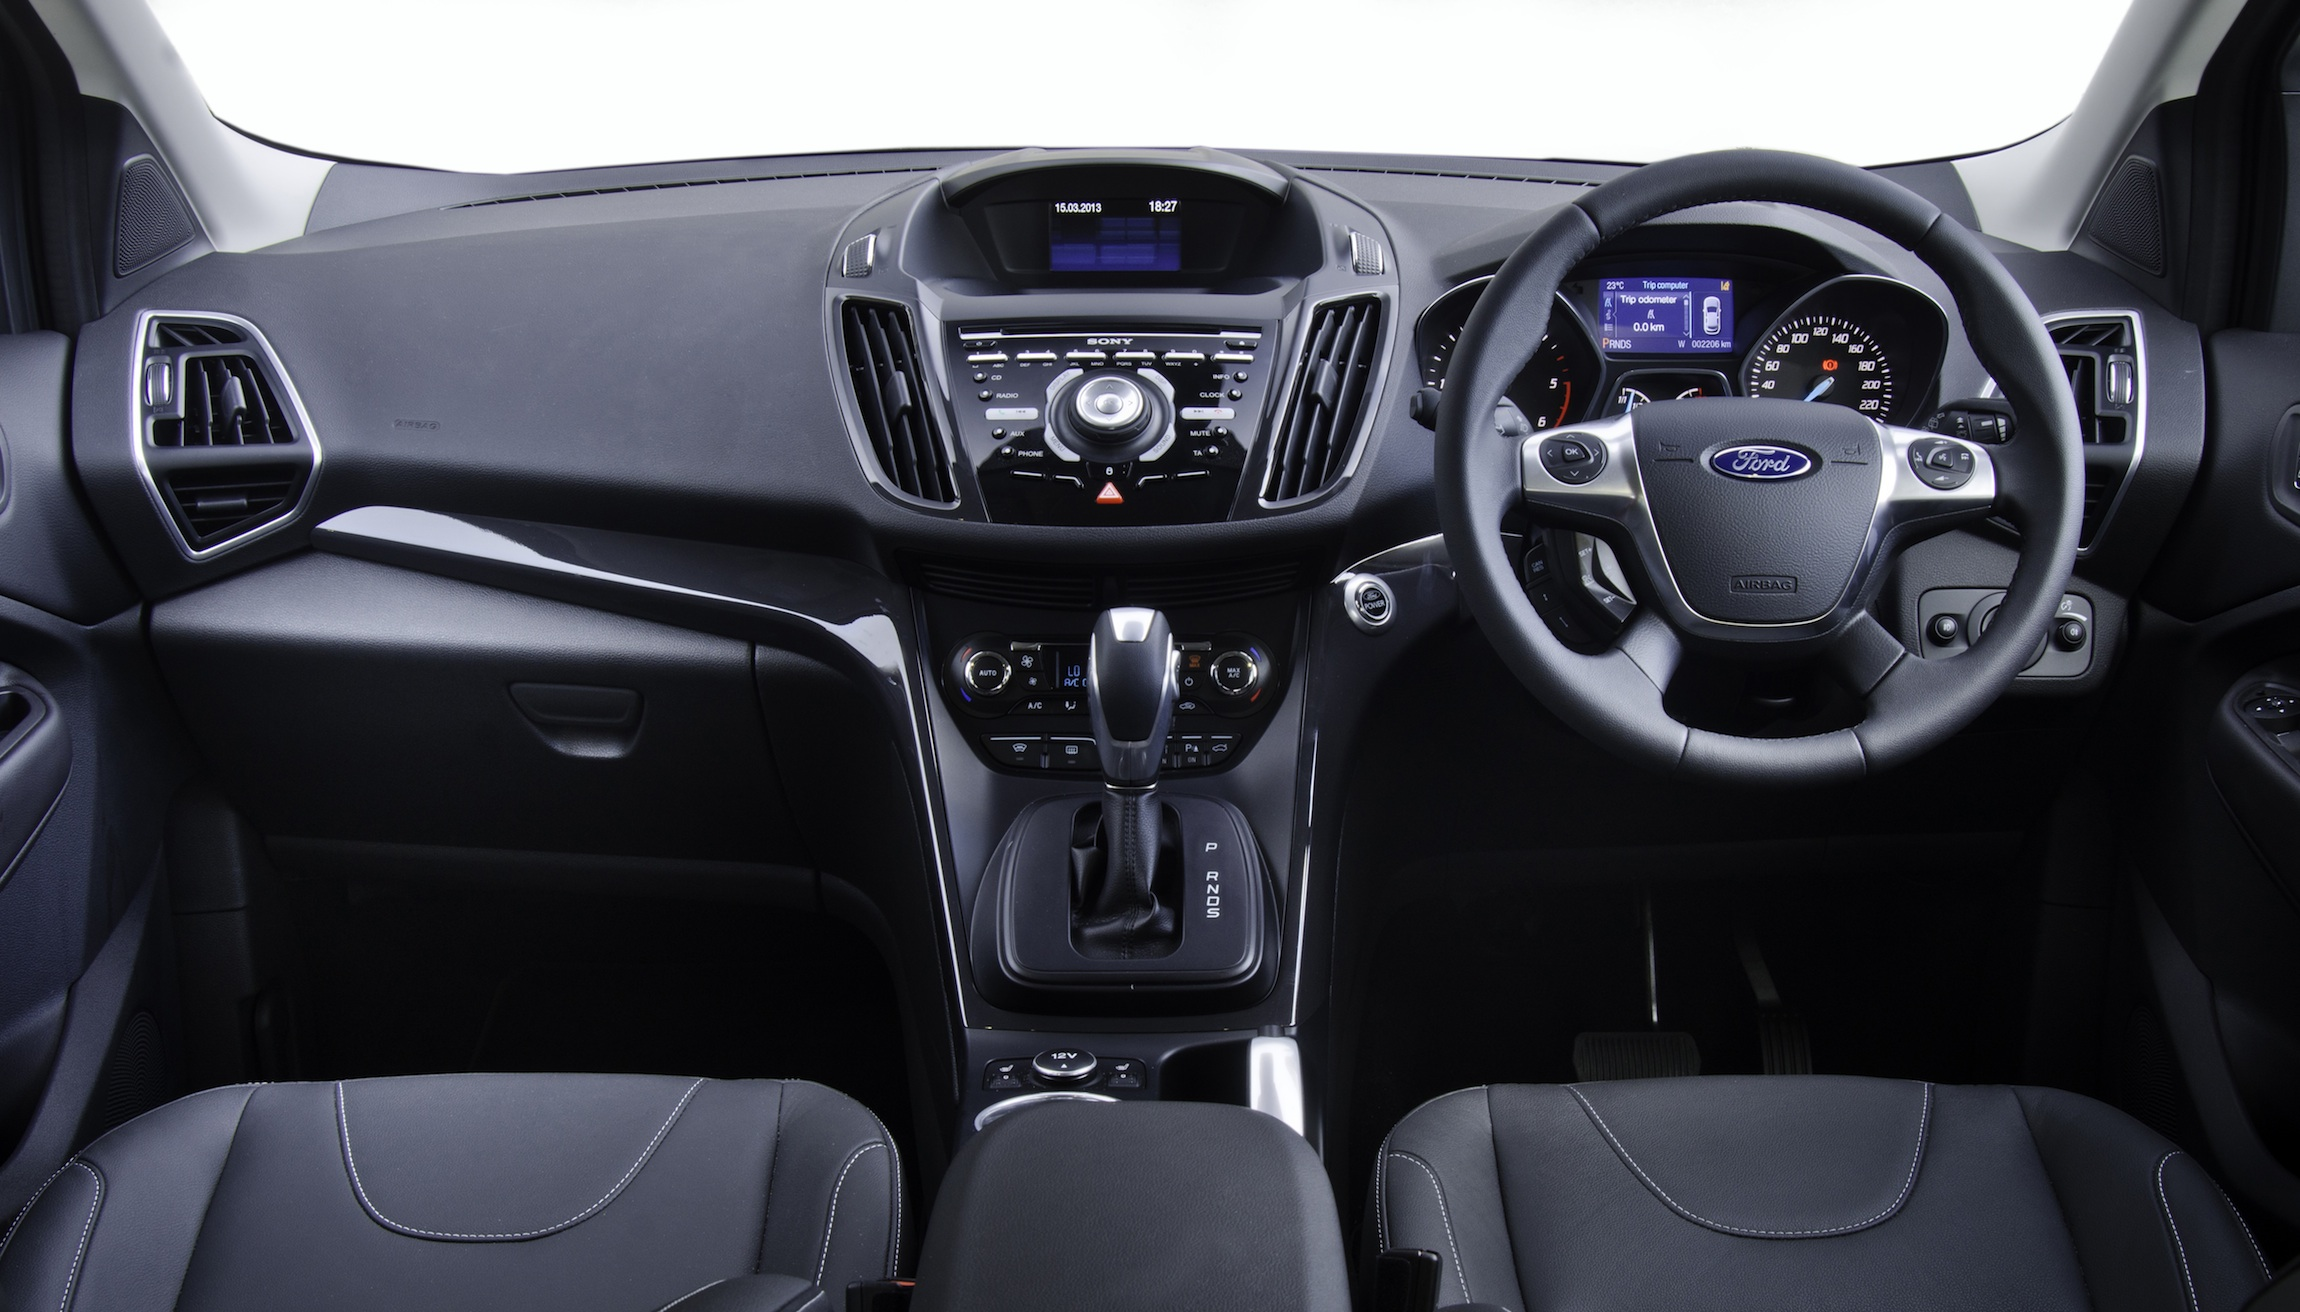 2013 Ford Kuga: pricing and specifications - Photos